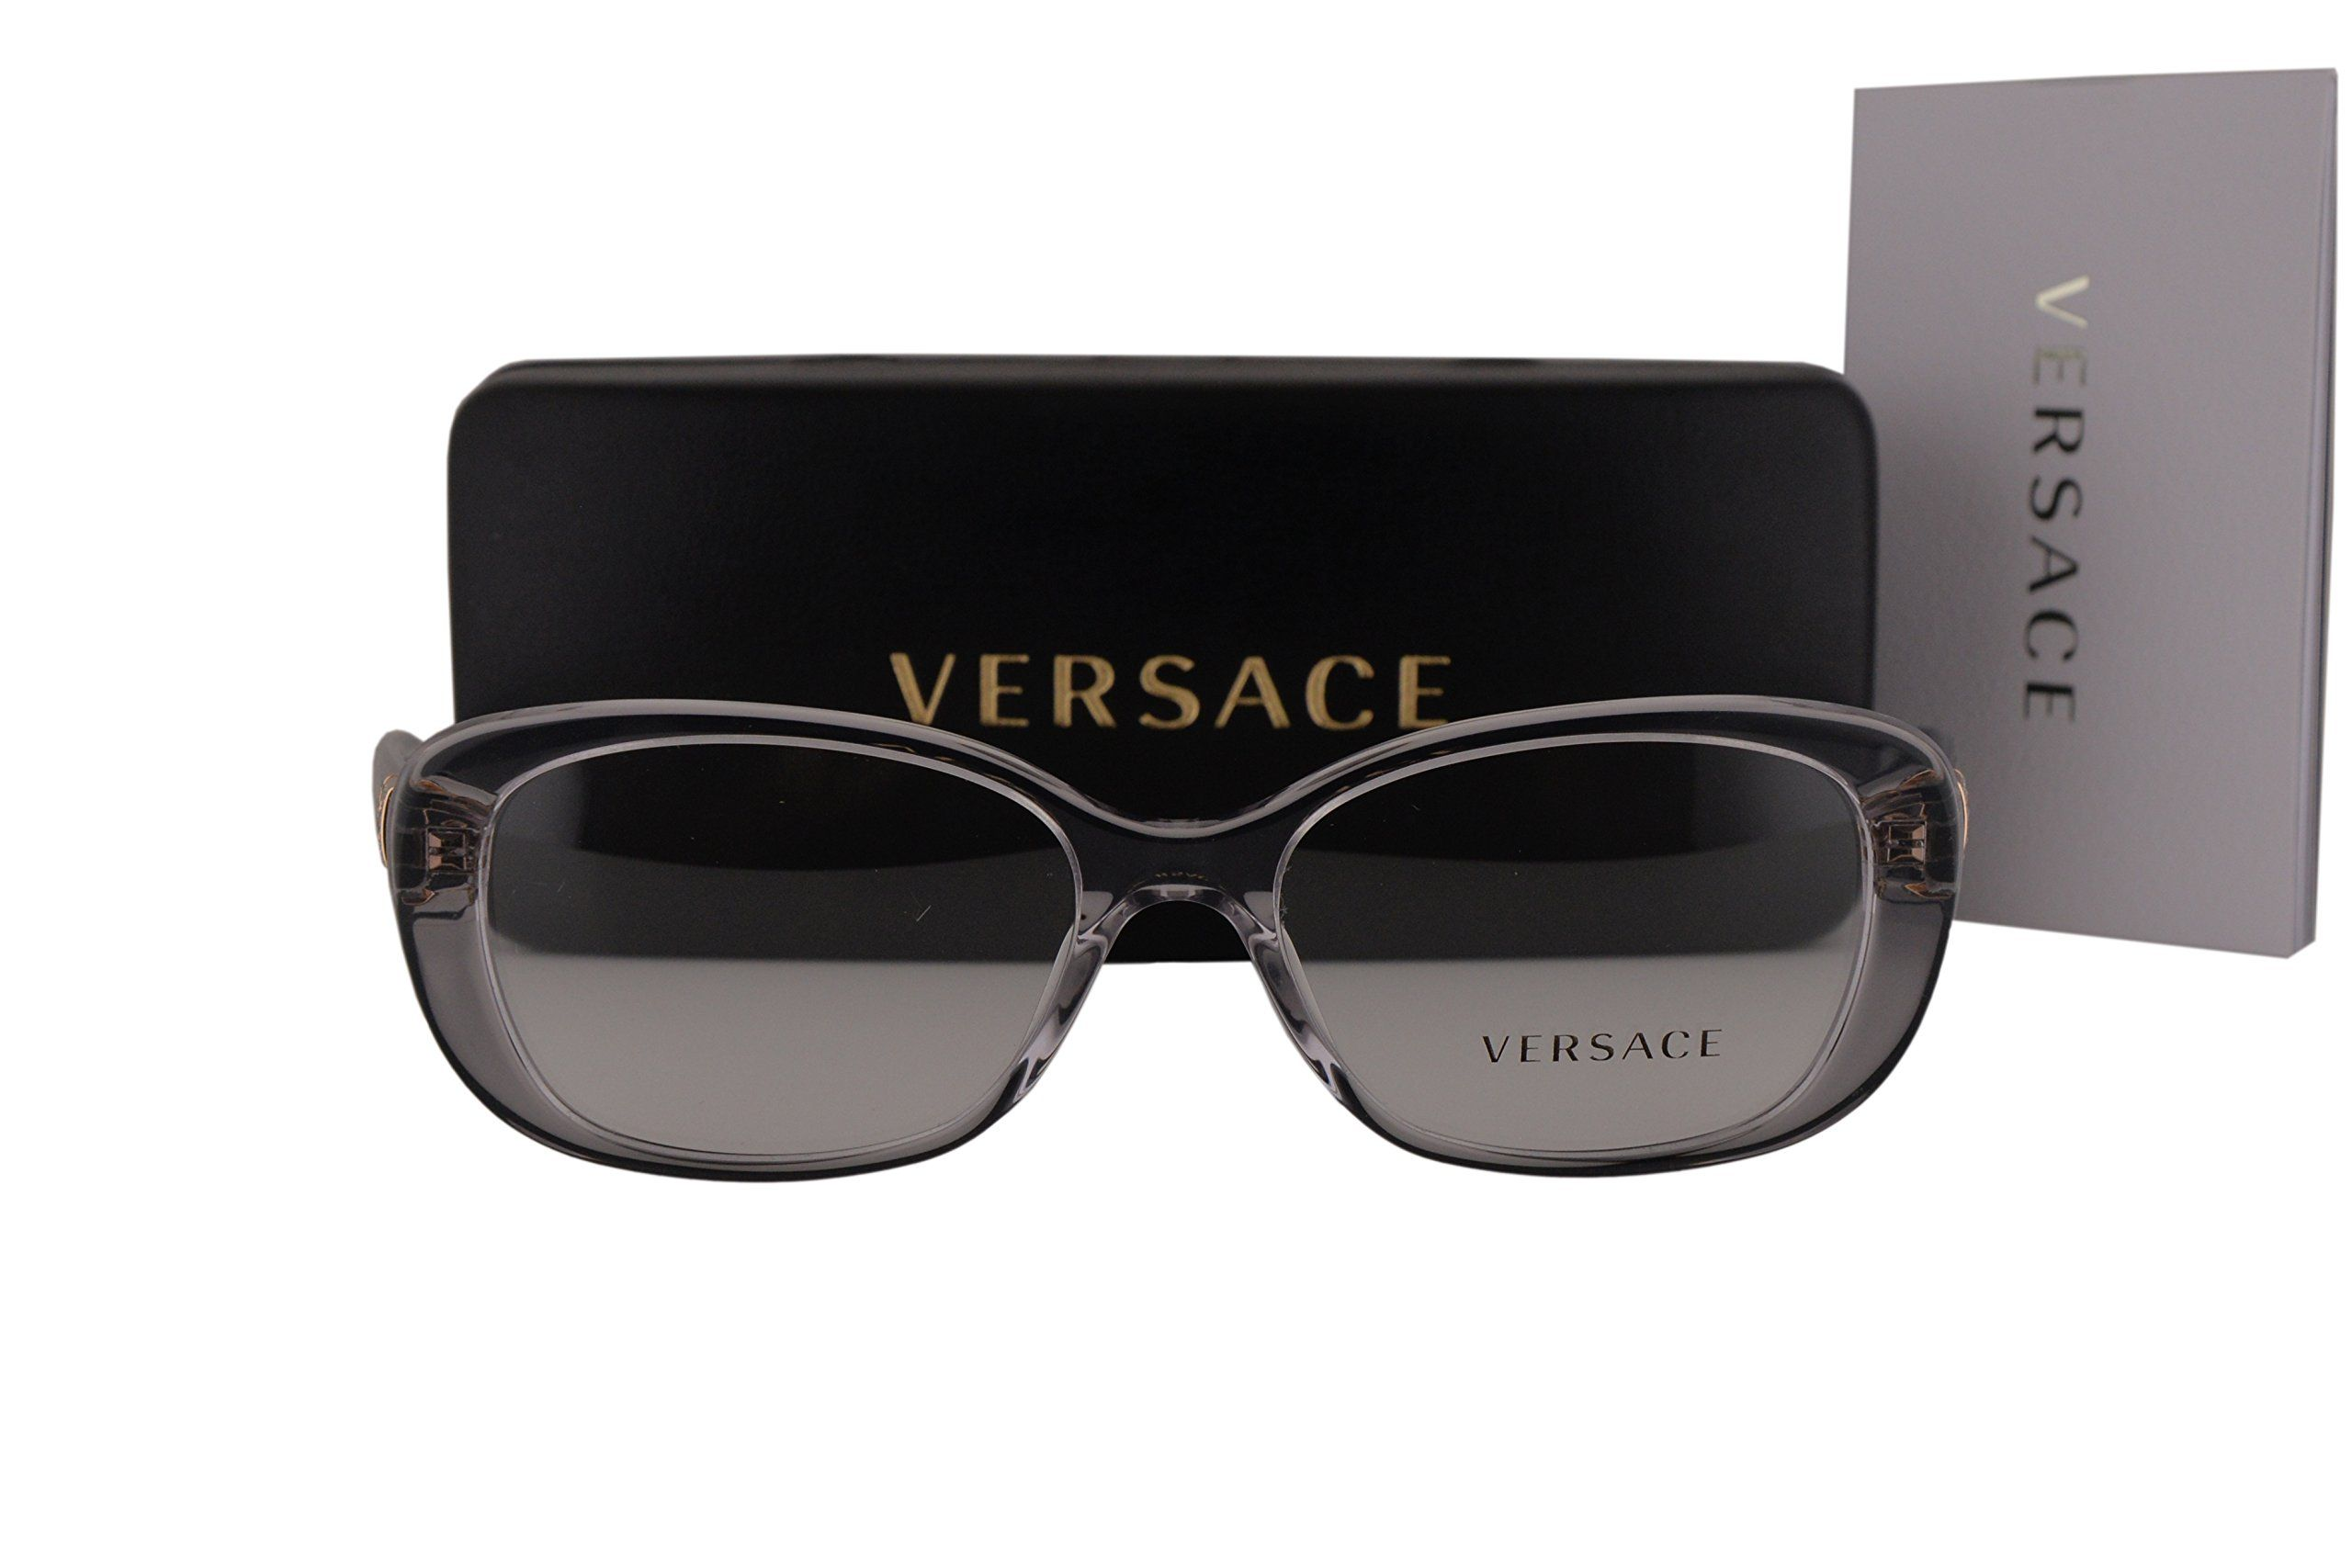 5f97dda6dad Versace VE3234B Eyeglasses 53-16-140 Gray Crystal 593 VE 3234B. Versace  Eyewear Collection. Model  VE3234B. Color Code  593 Gray Crystal w NON-WEAR…